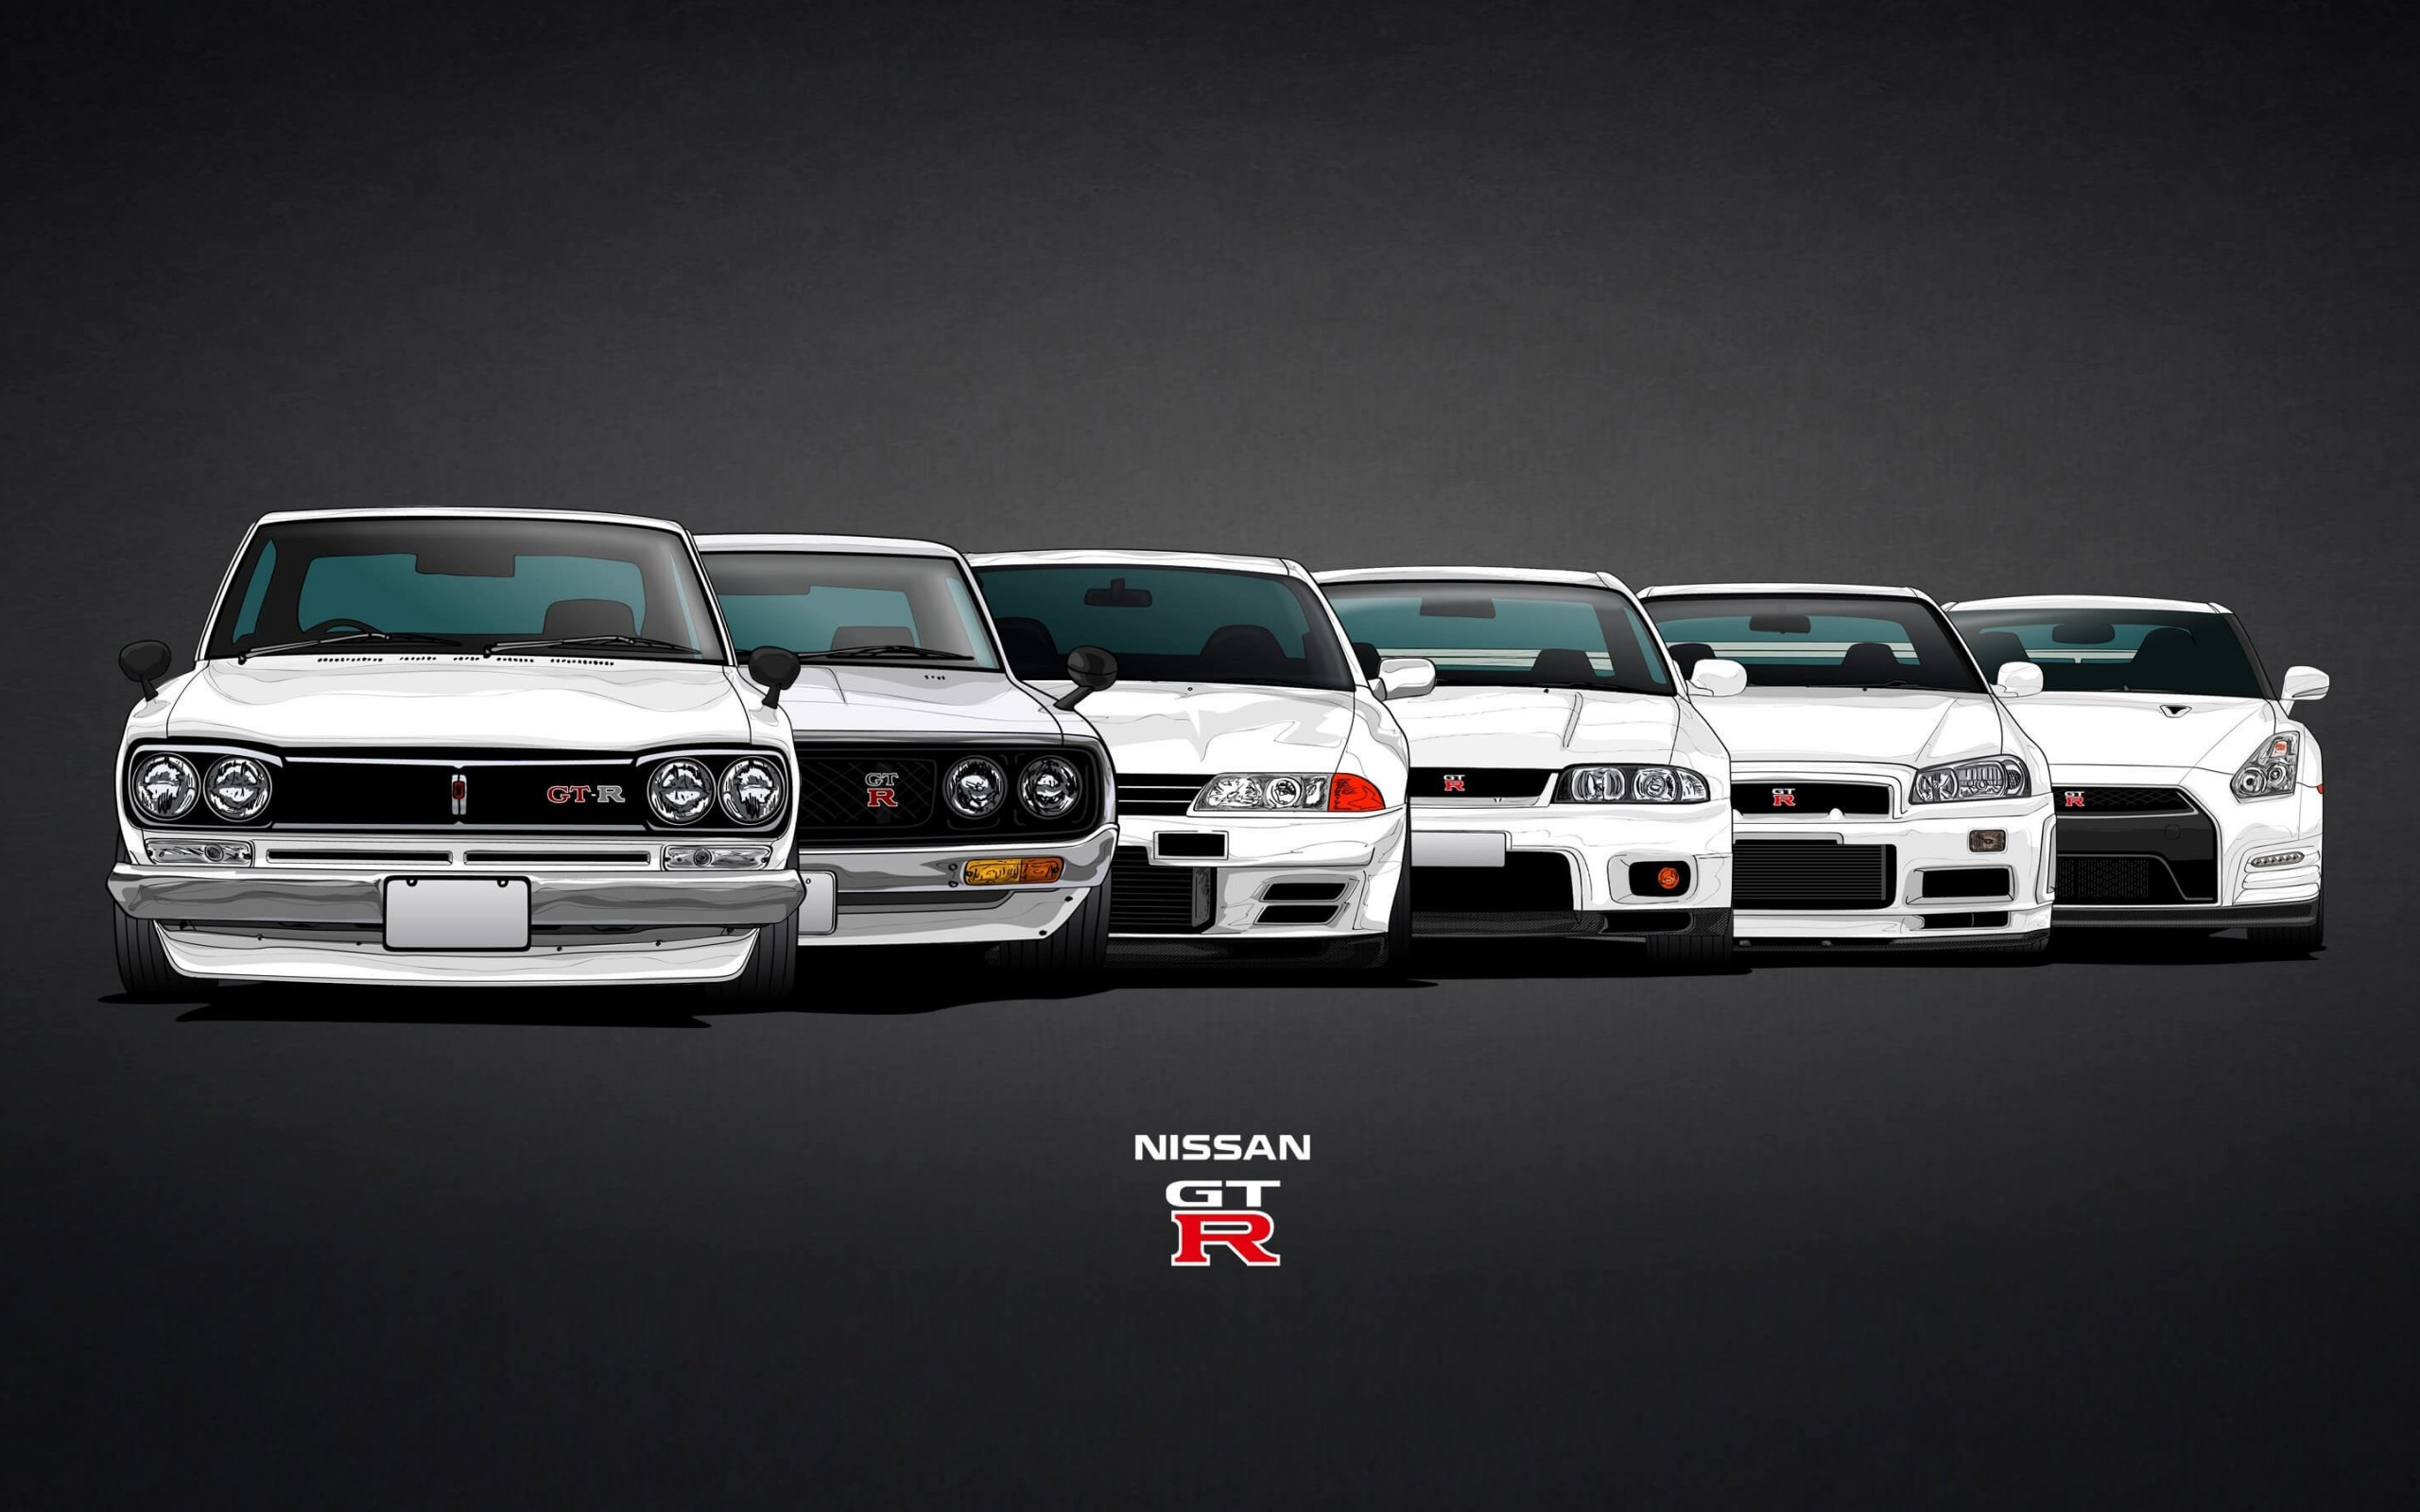 Nissan Skyline GT-R Evolution Wallpaper for Desktop 2560x1600